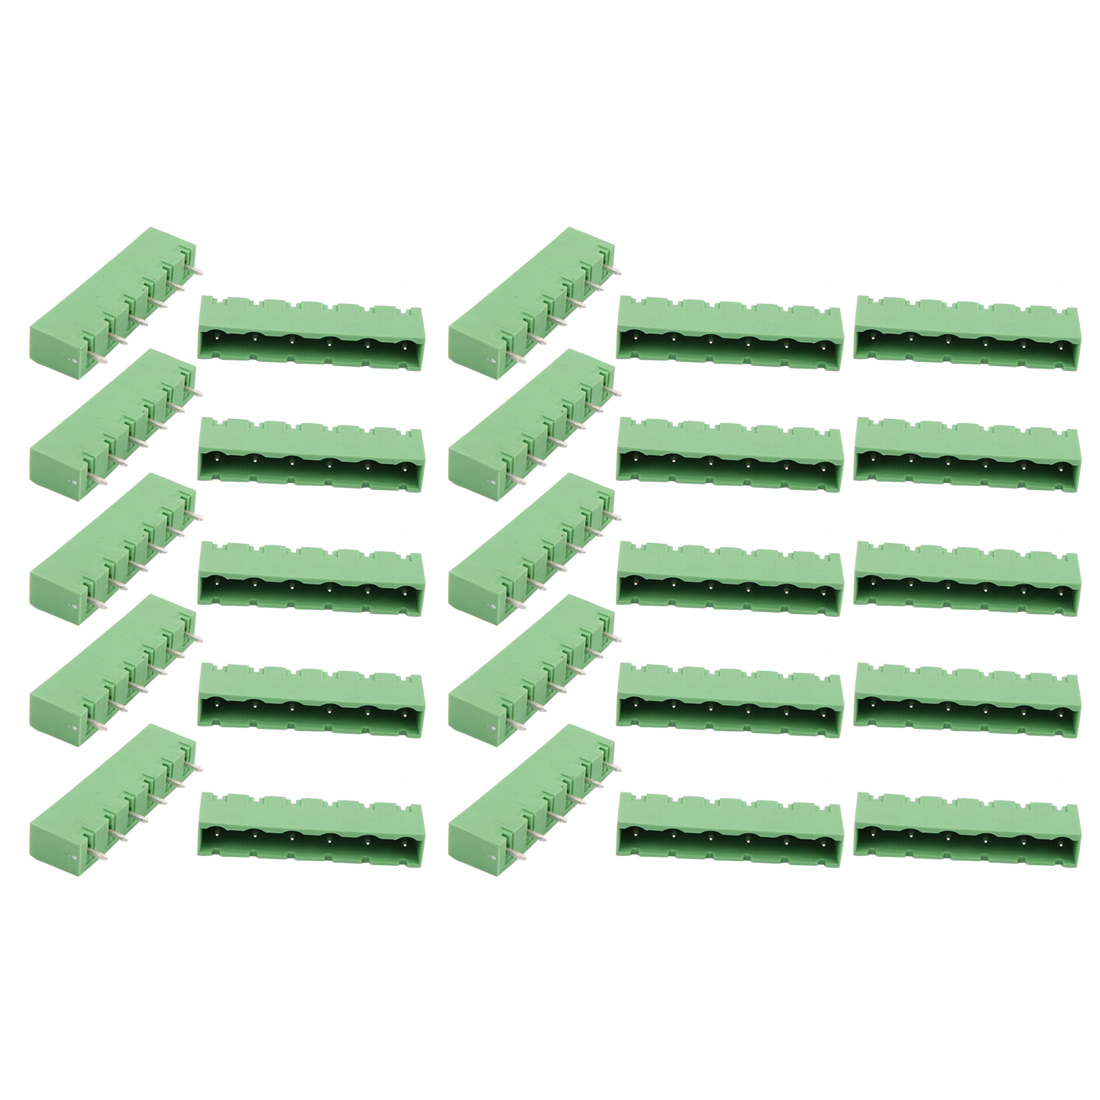 25 Pcs LZ1V 7.62mm Pitch 6P PCB Mounting Terminal Block Wire Connector